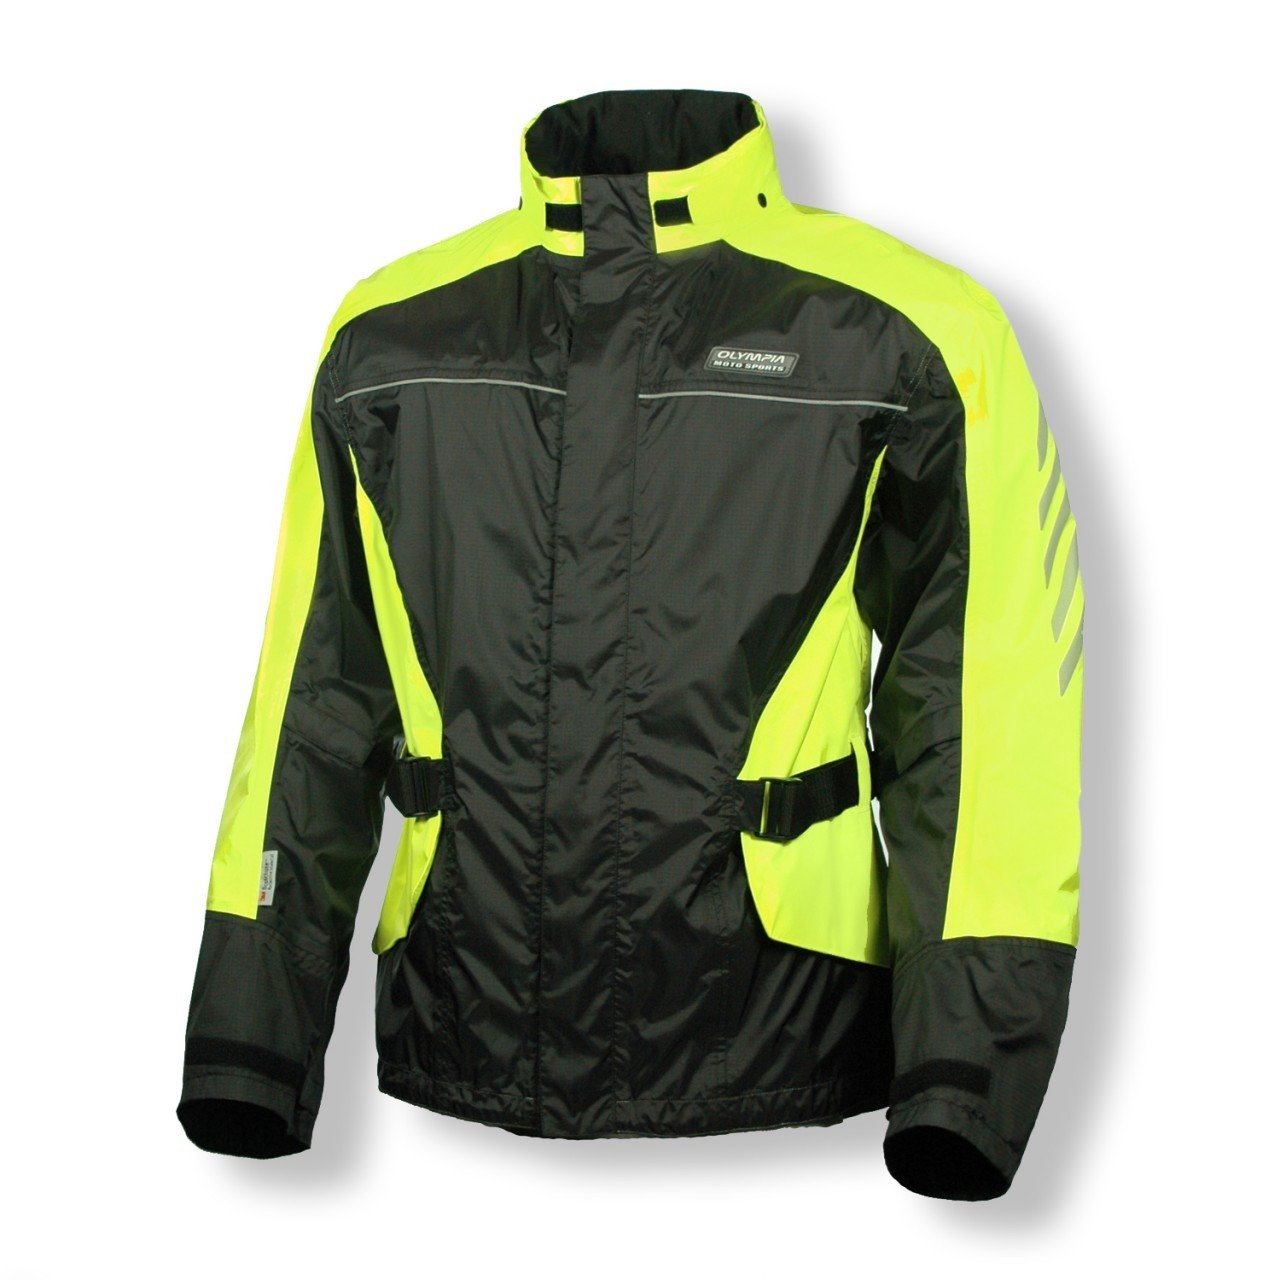 Amazon.com: Olympia Horizon Adult Rain Jacket Street Motorcycle ...